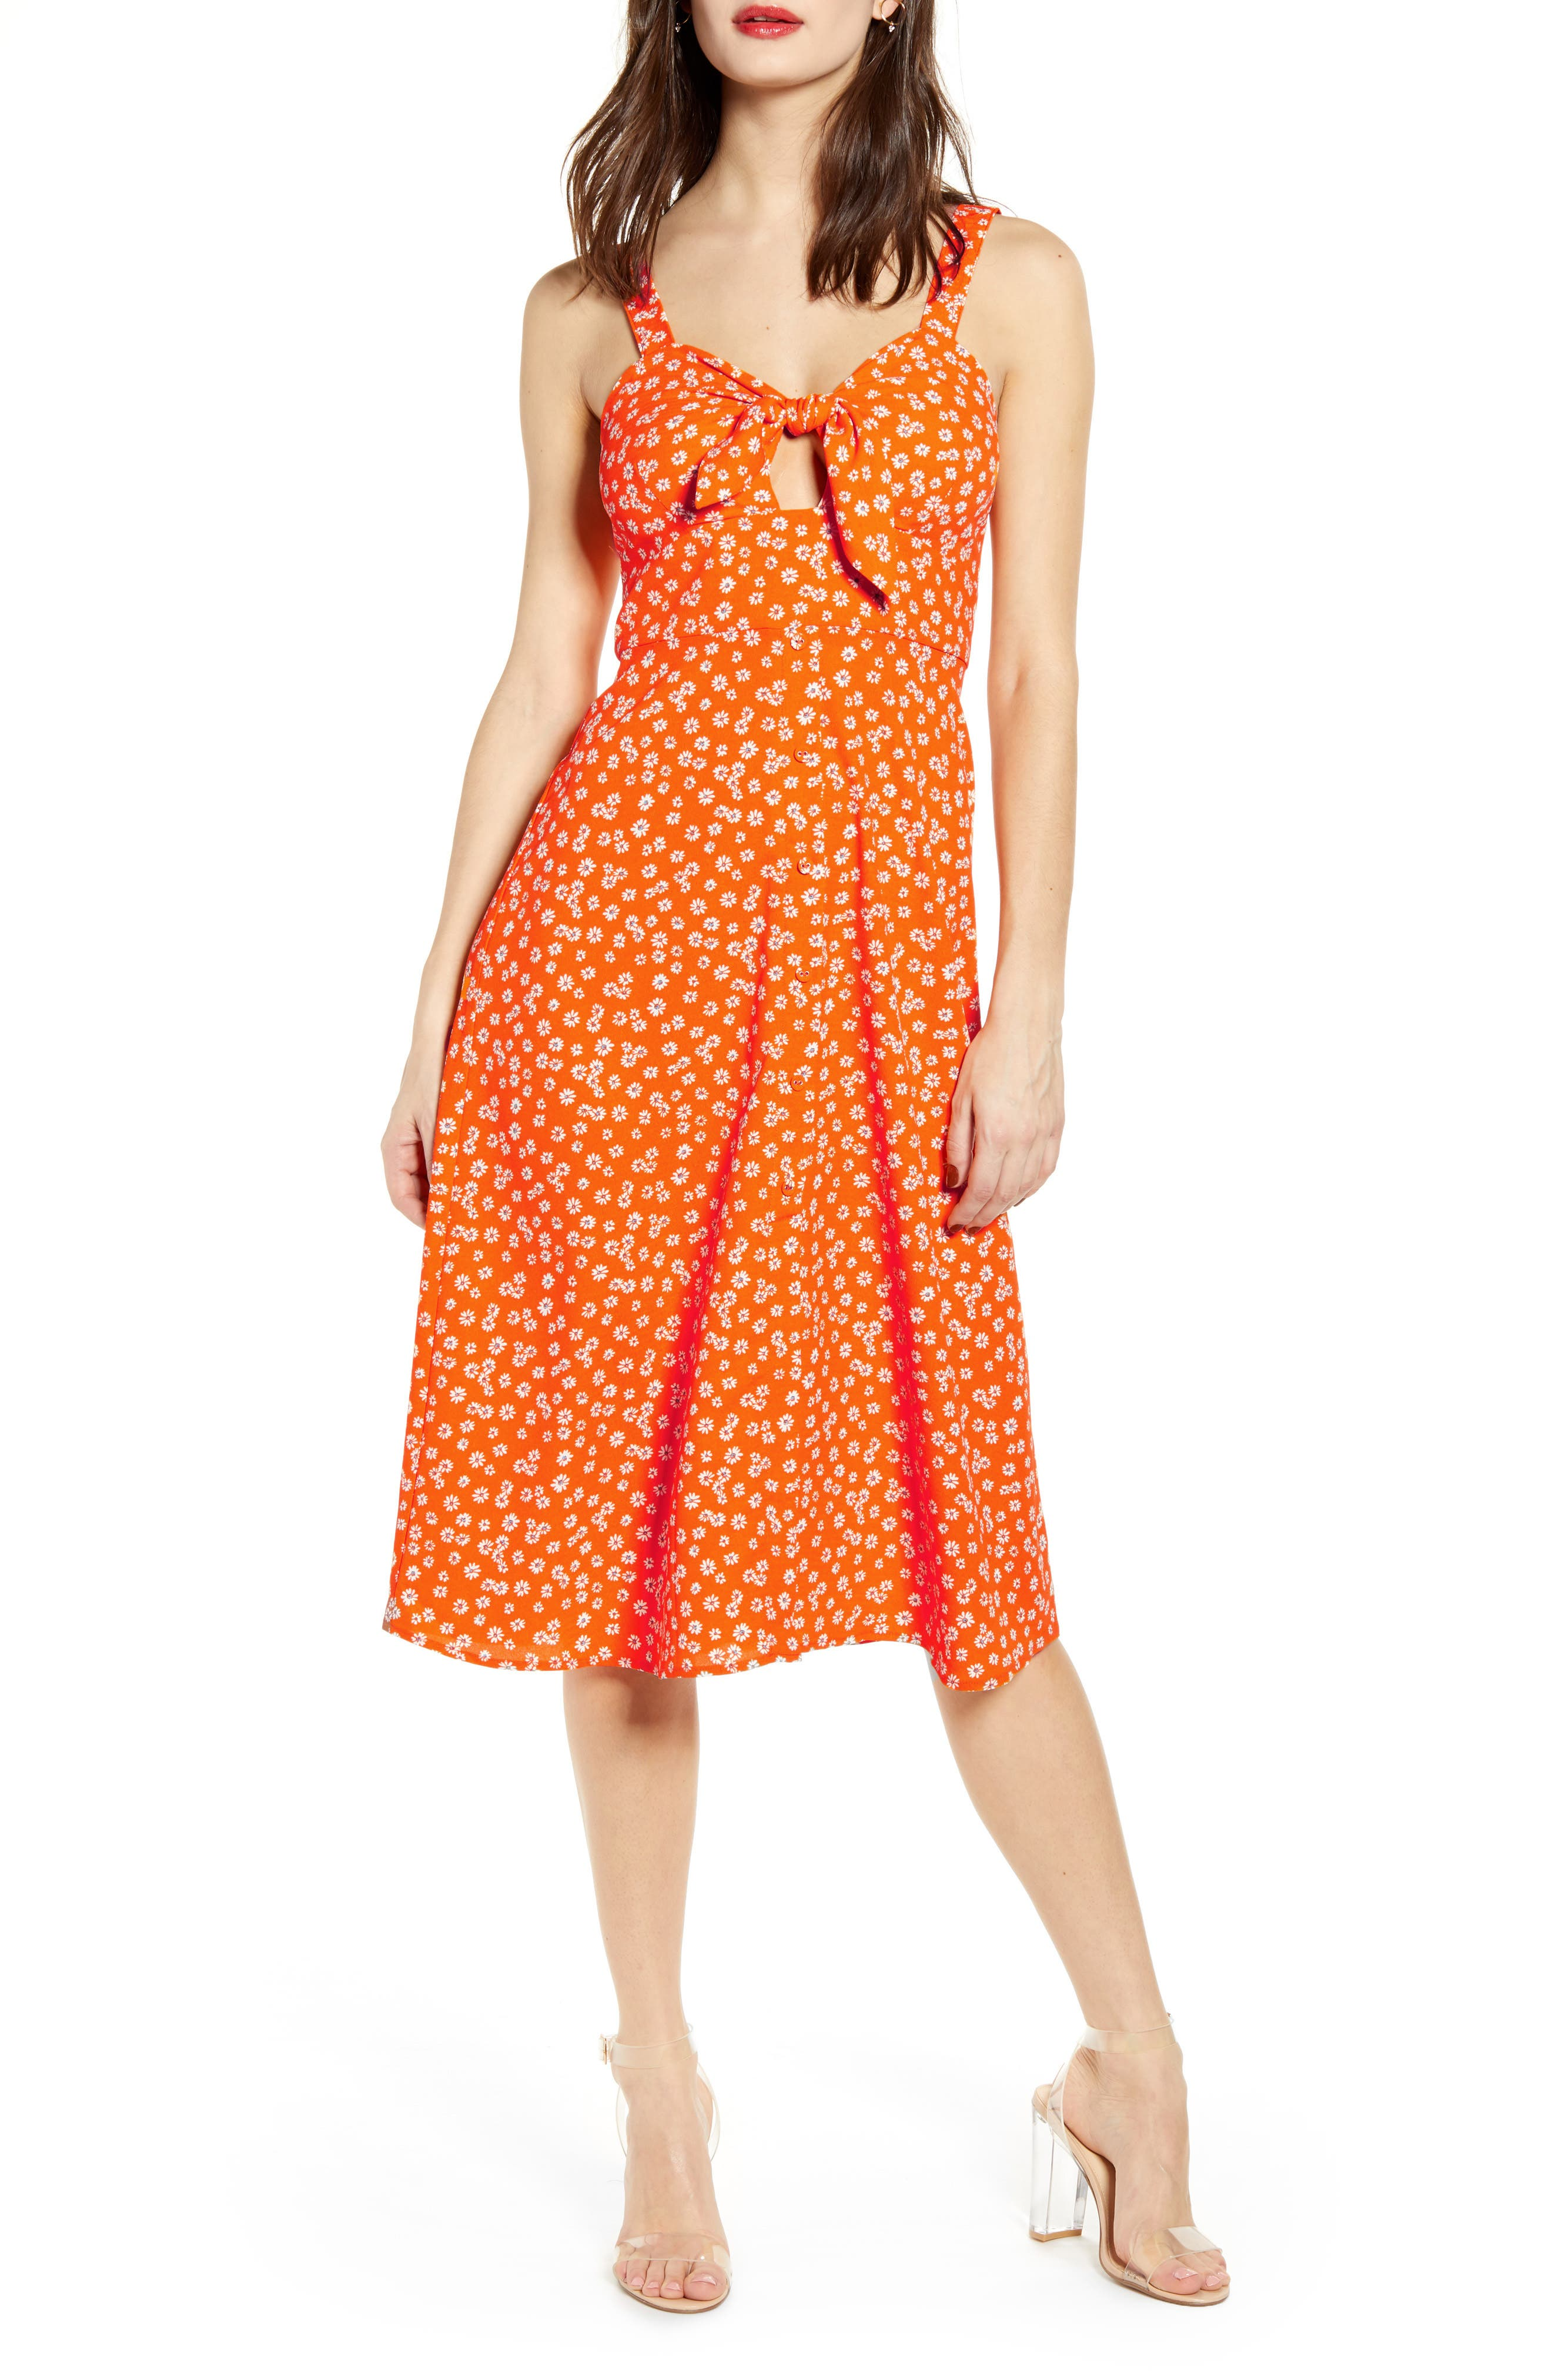 J.o.a. Ditsy Print Dress, Orange